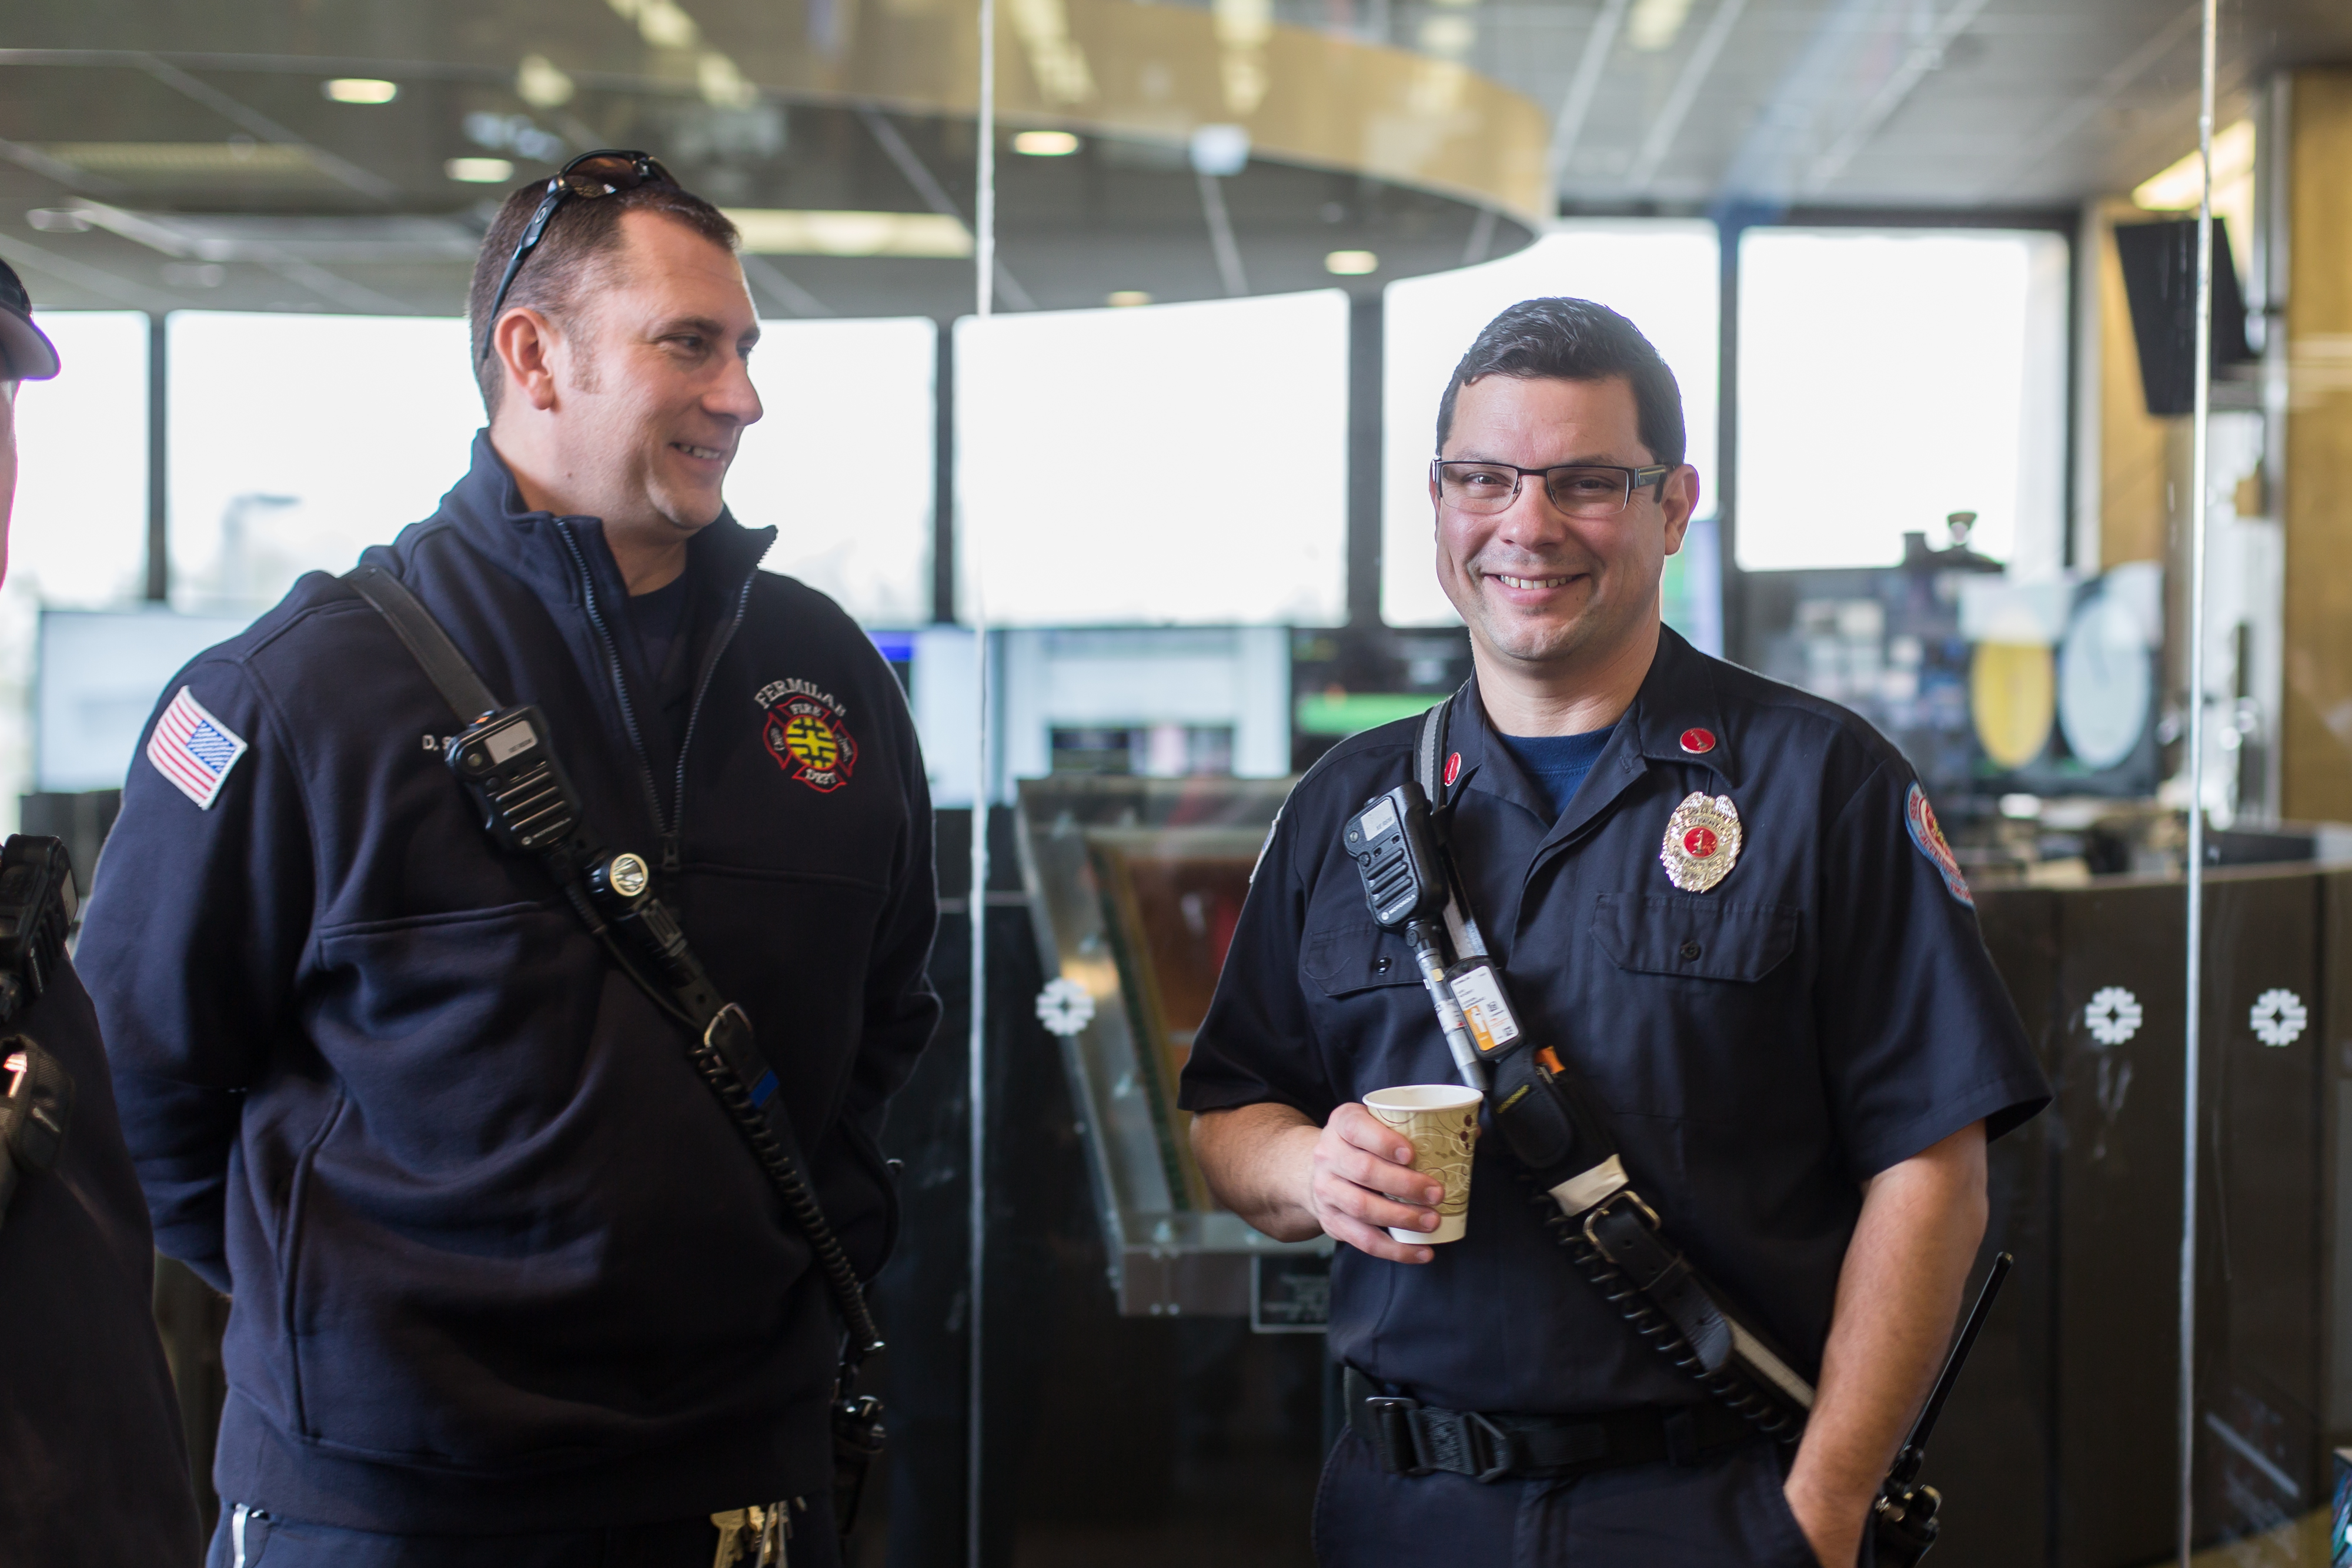 Firefighter Dave Sabatino (left) and Lieutenant Steve Hernandez enjoy the reception after the all-hands meeting. Photo: Elliott McCrory, people